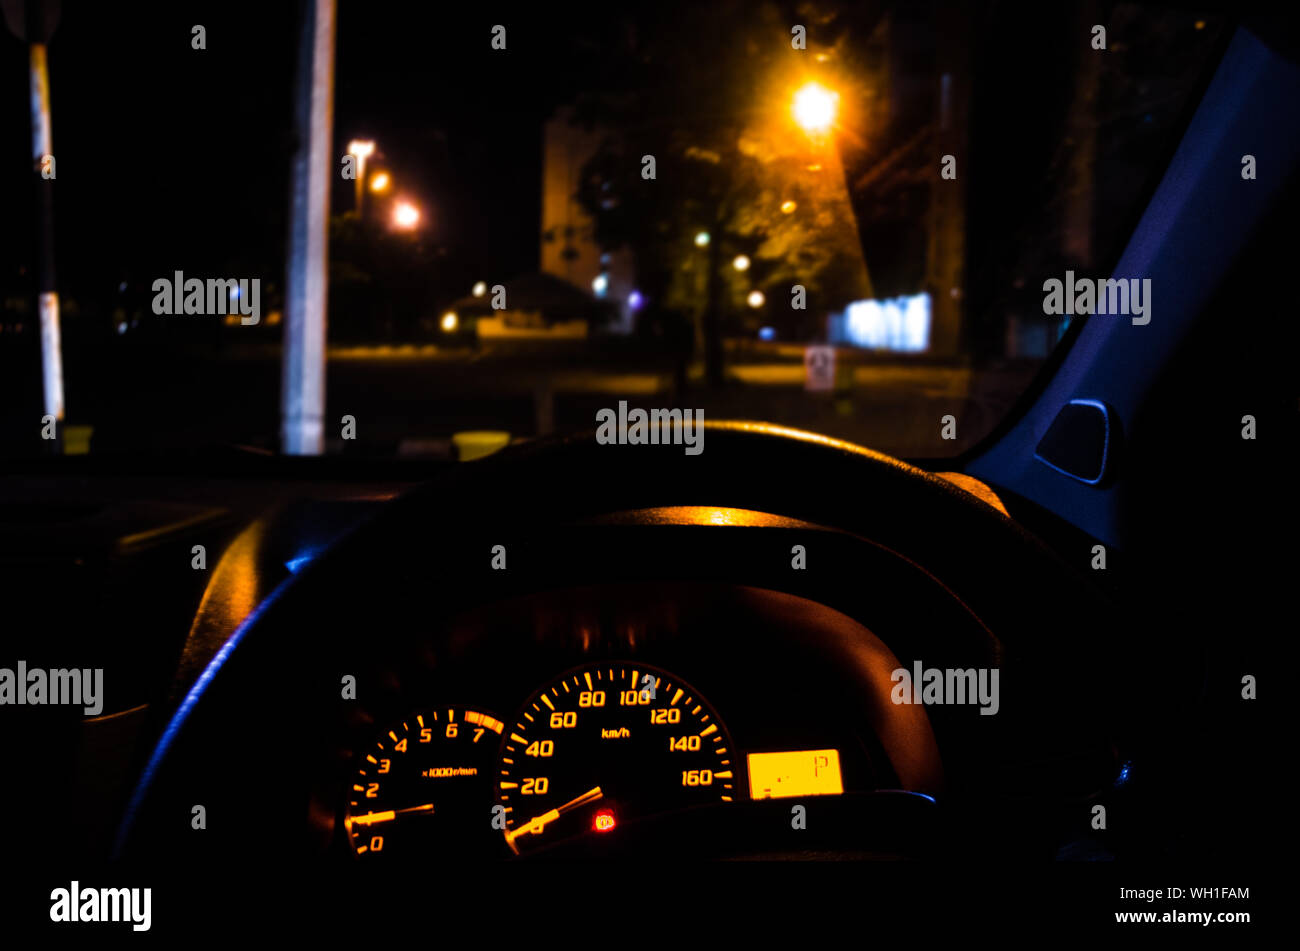 Close Up Of Illuminated Speedometer And Steering Wheel In Car At Night Stock Photo Alamy